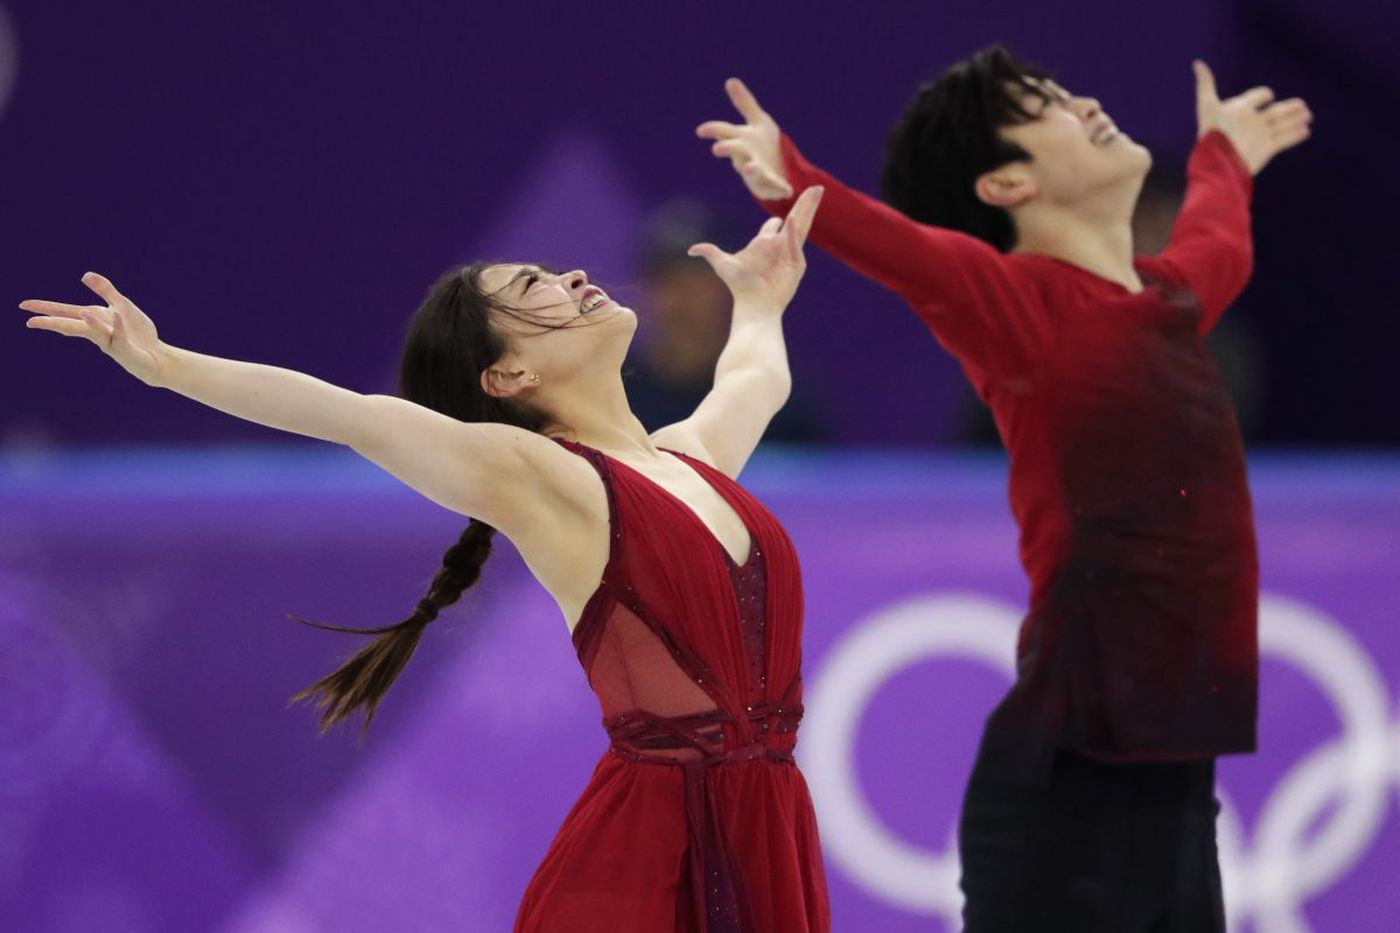 Ice dancing is sensual. The Shibutanis - America's 'Shib Sibs' - try to portray passion of a different kind